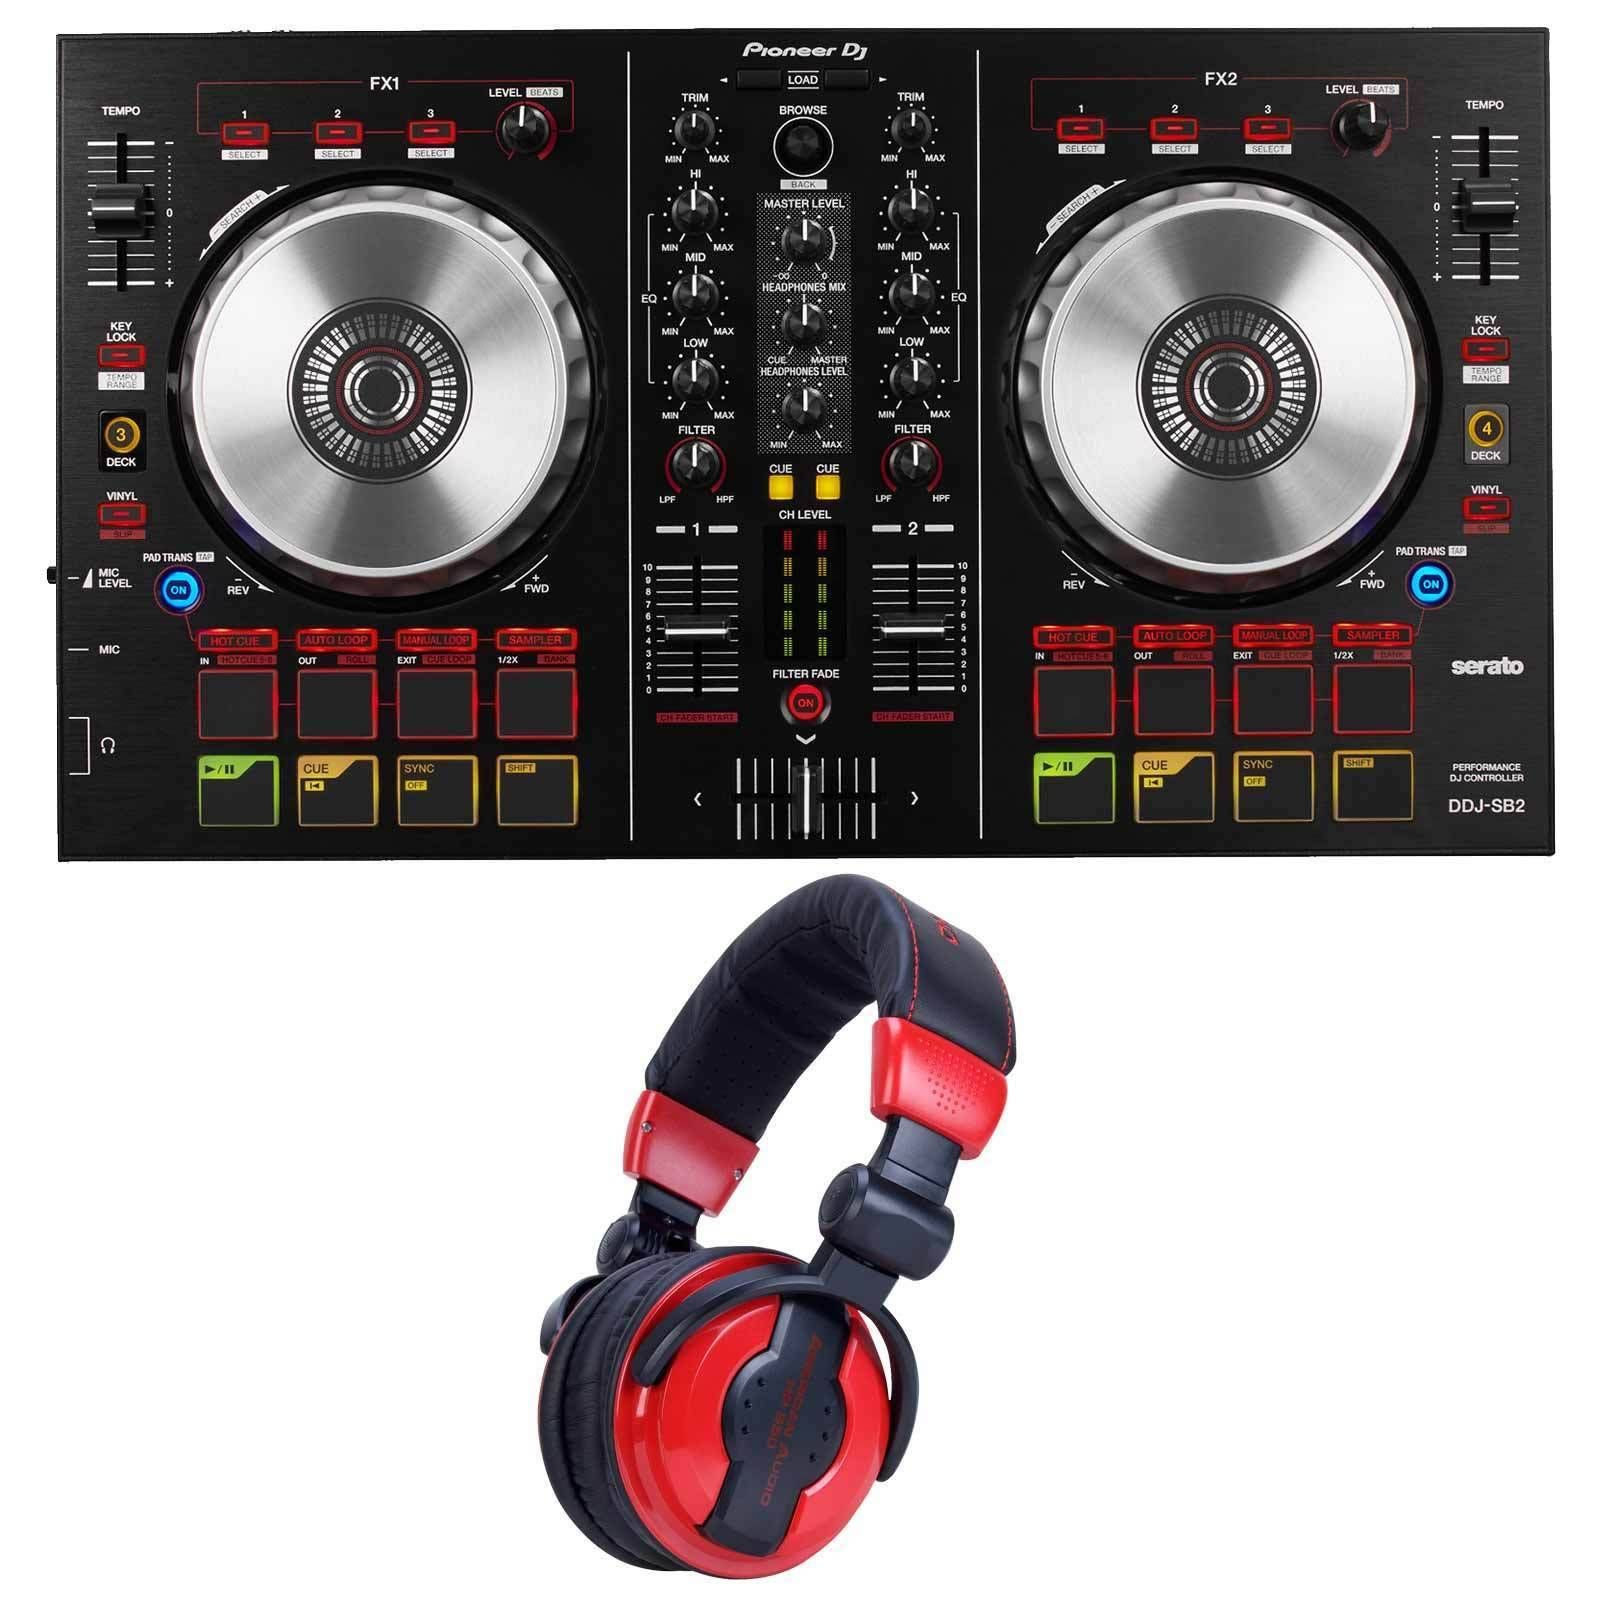 Cool Pioneer Dj Ddj Sb2 Moveable 2 Channel Controller For Serato Dj Headphones Check More At Https Aeoffers Com Produc Dj Headphones Pioneer Dj Pioneer Ddj